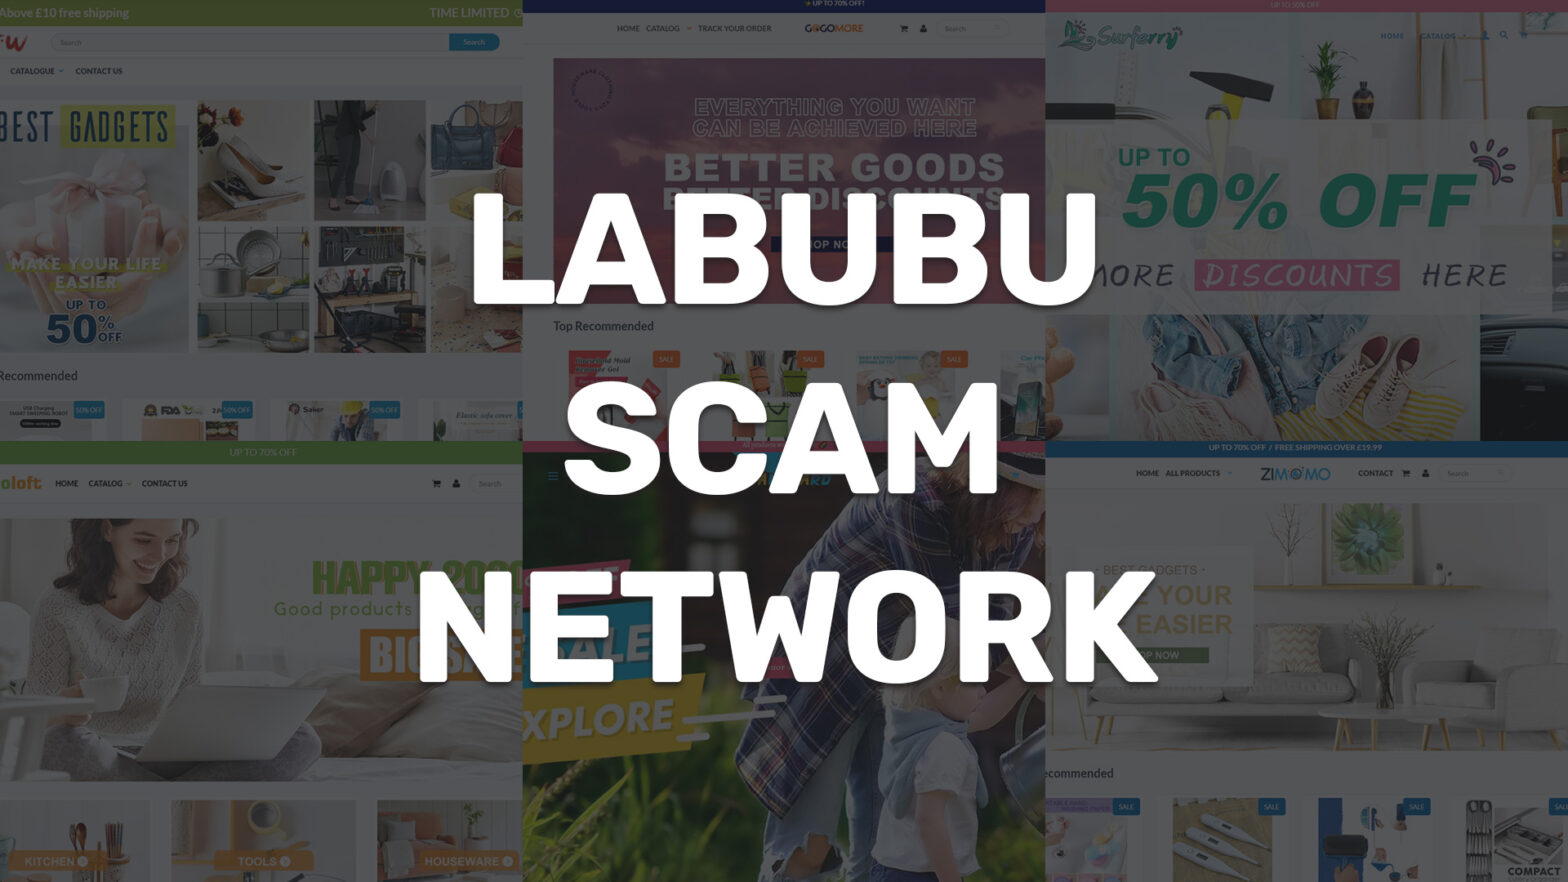 labubu limited scam network